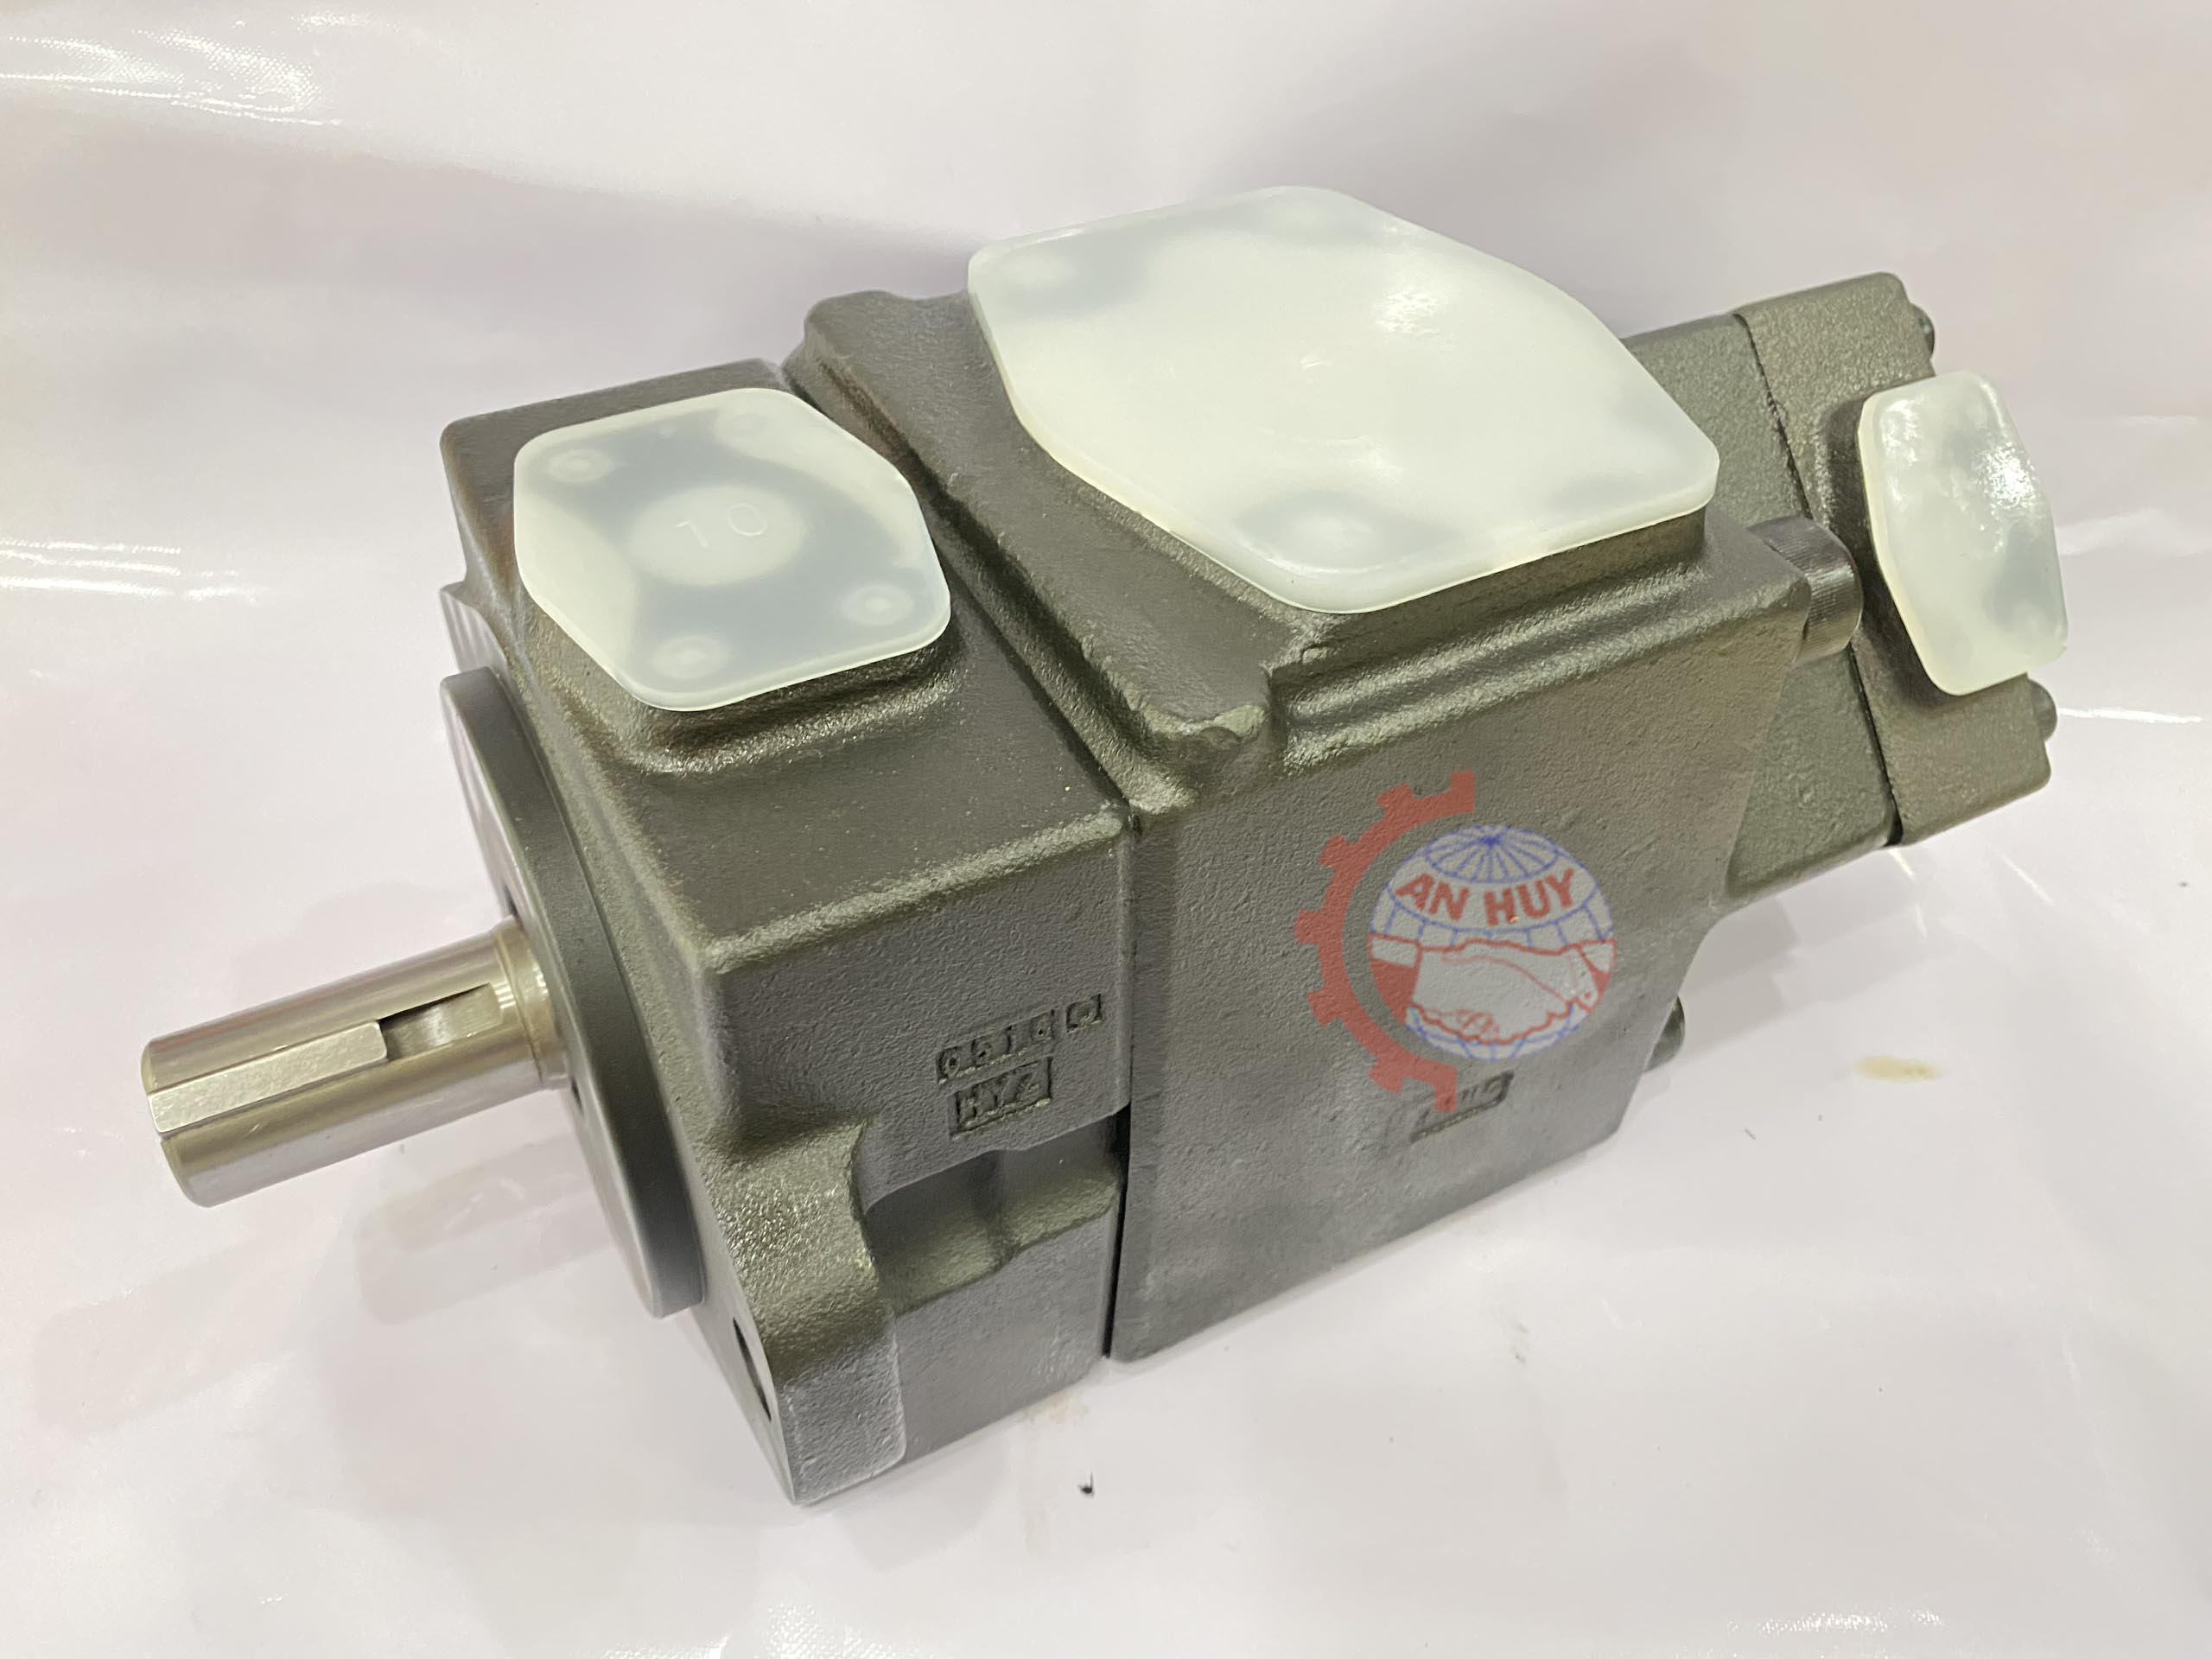 Bom-Yuken-Model-PV2R23-41/94-F-RAAA-41/Part-number-202008